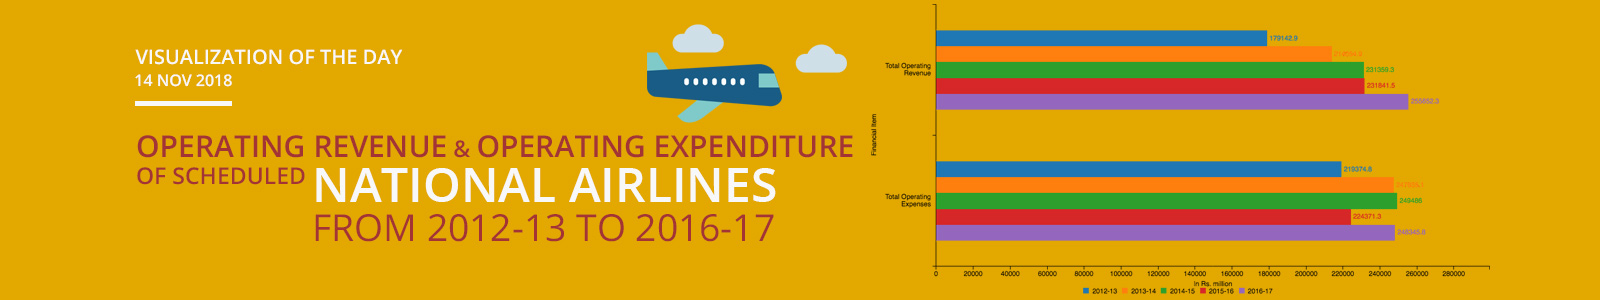 Visualization of the Day - 14th November 2018 : Operating Revenue & Operating Expenditure of Scheduled National Airlines from 2012-13 to 2016-17